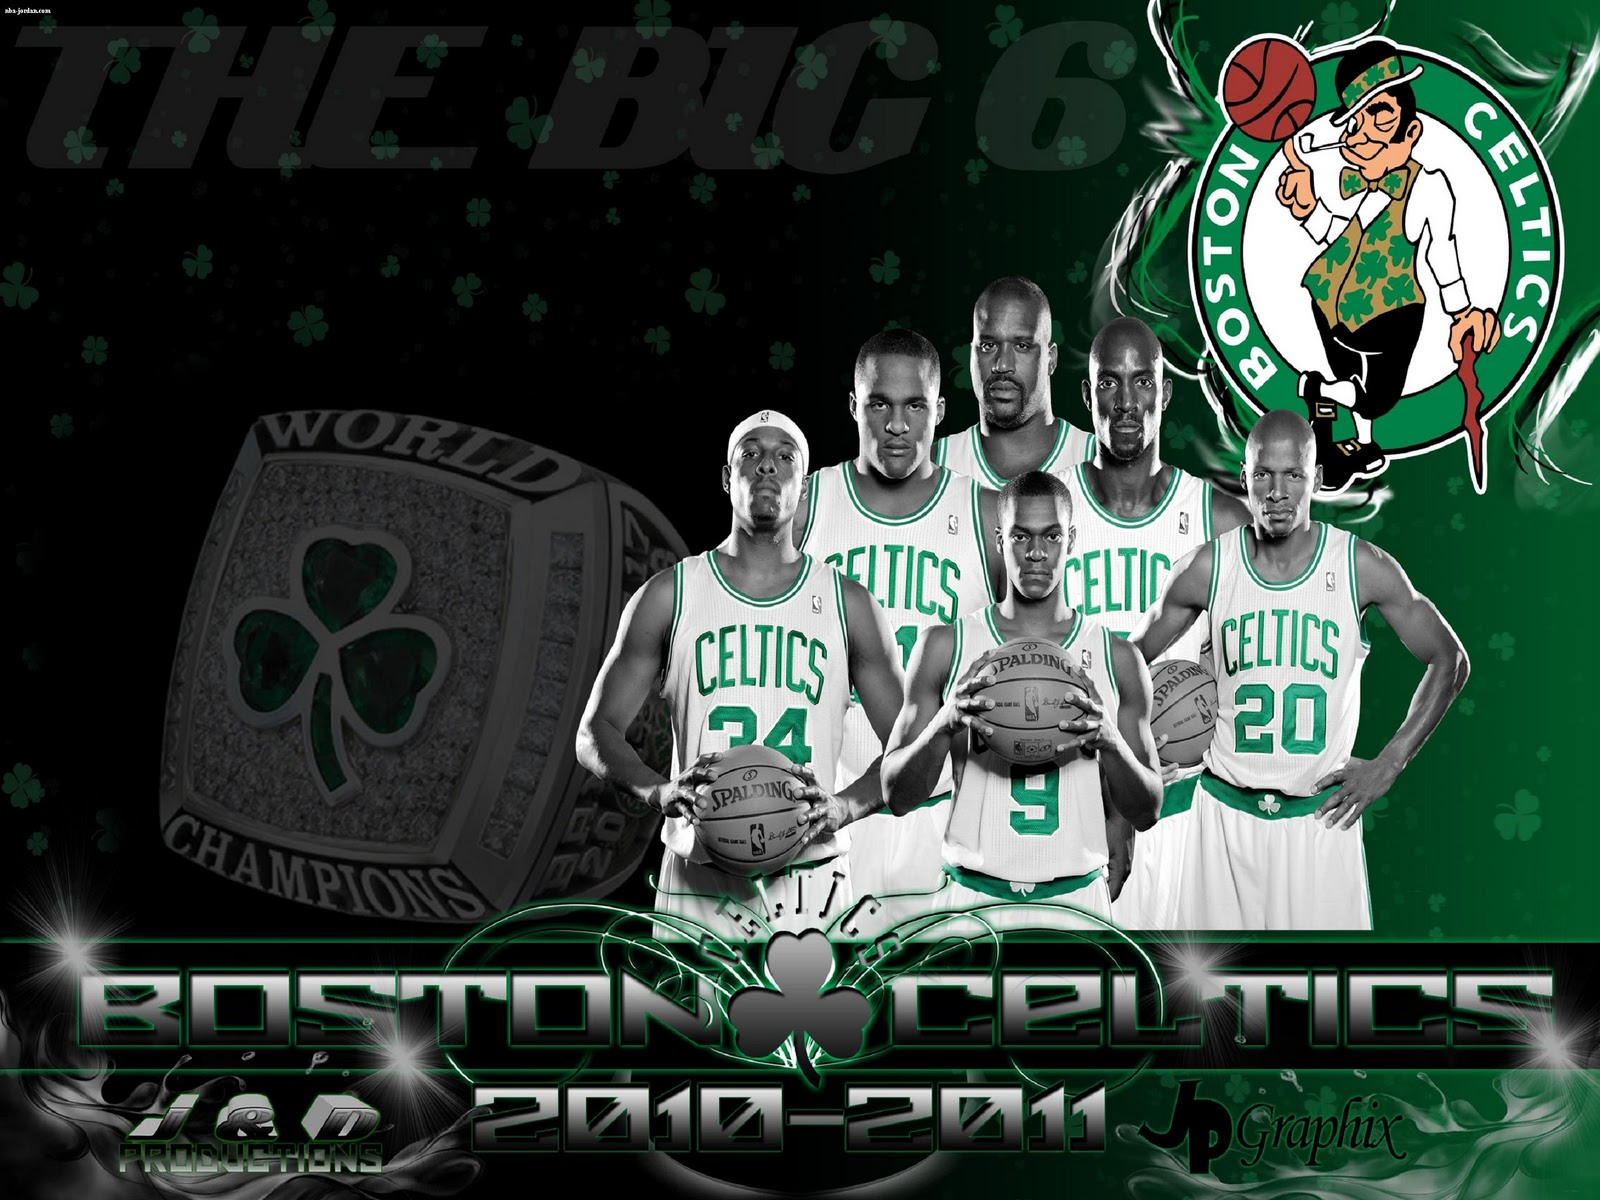 Remarkable Boston Celtics Wallpaper For Windows te Isaiah Thomas Wallpapers Basketball Wallpapers at 1600x1200